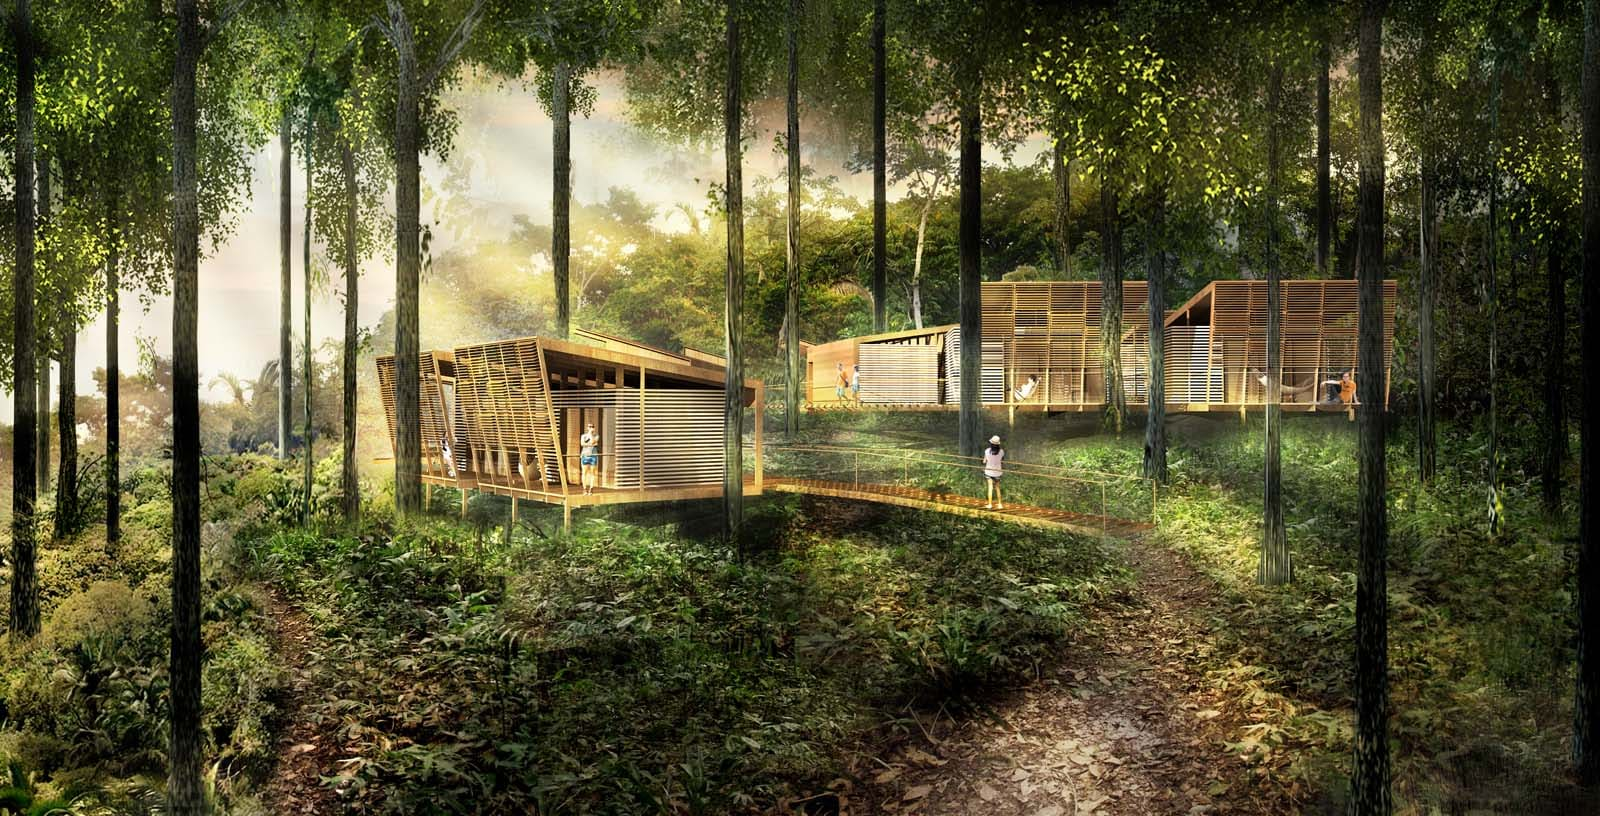 National_Parks_Brazil_04_Architecture_IDOM_computer_graphics_Andreia_Faley